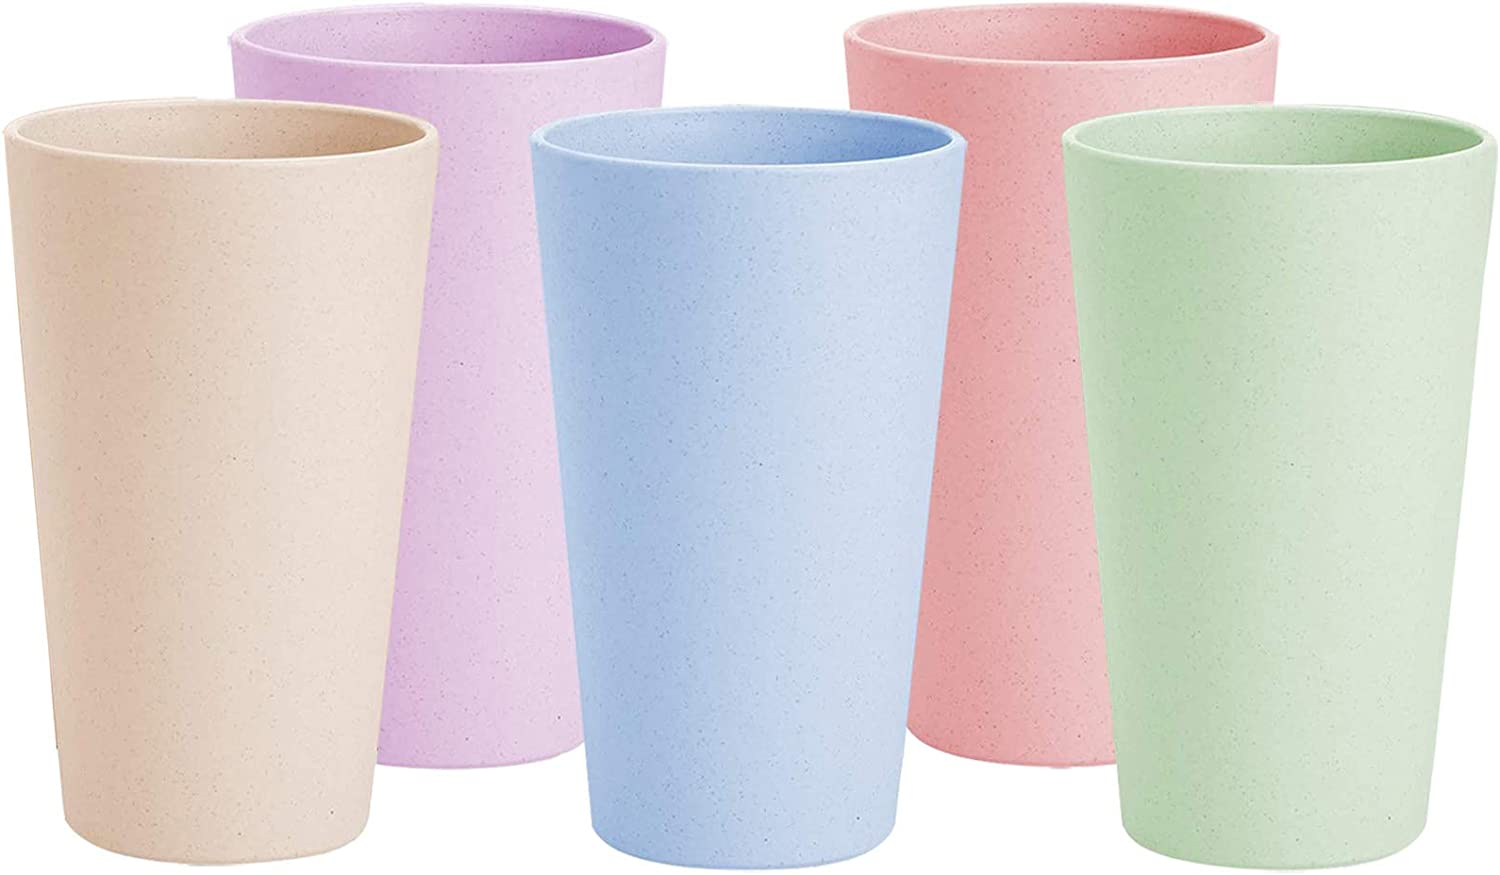 Super sale period limited YAPULLYA 20 oz Unbreakable excellence Drinking Wheat Straw Reusable Cups